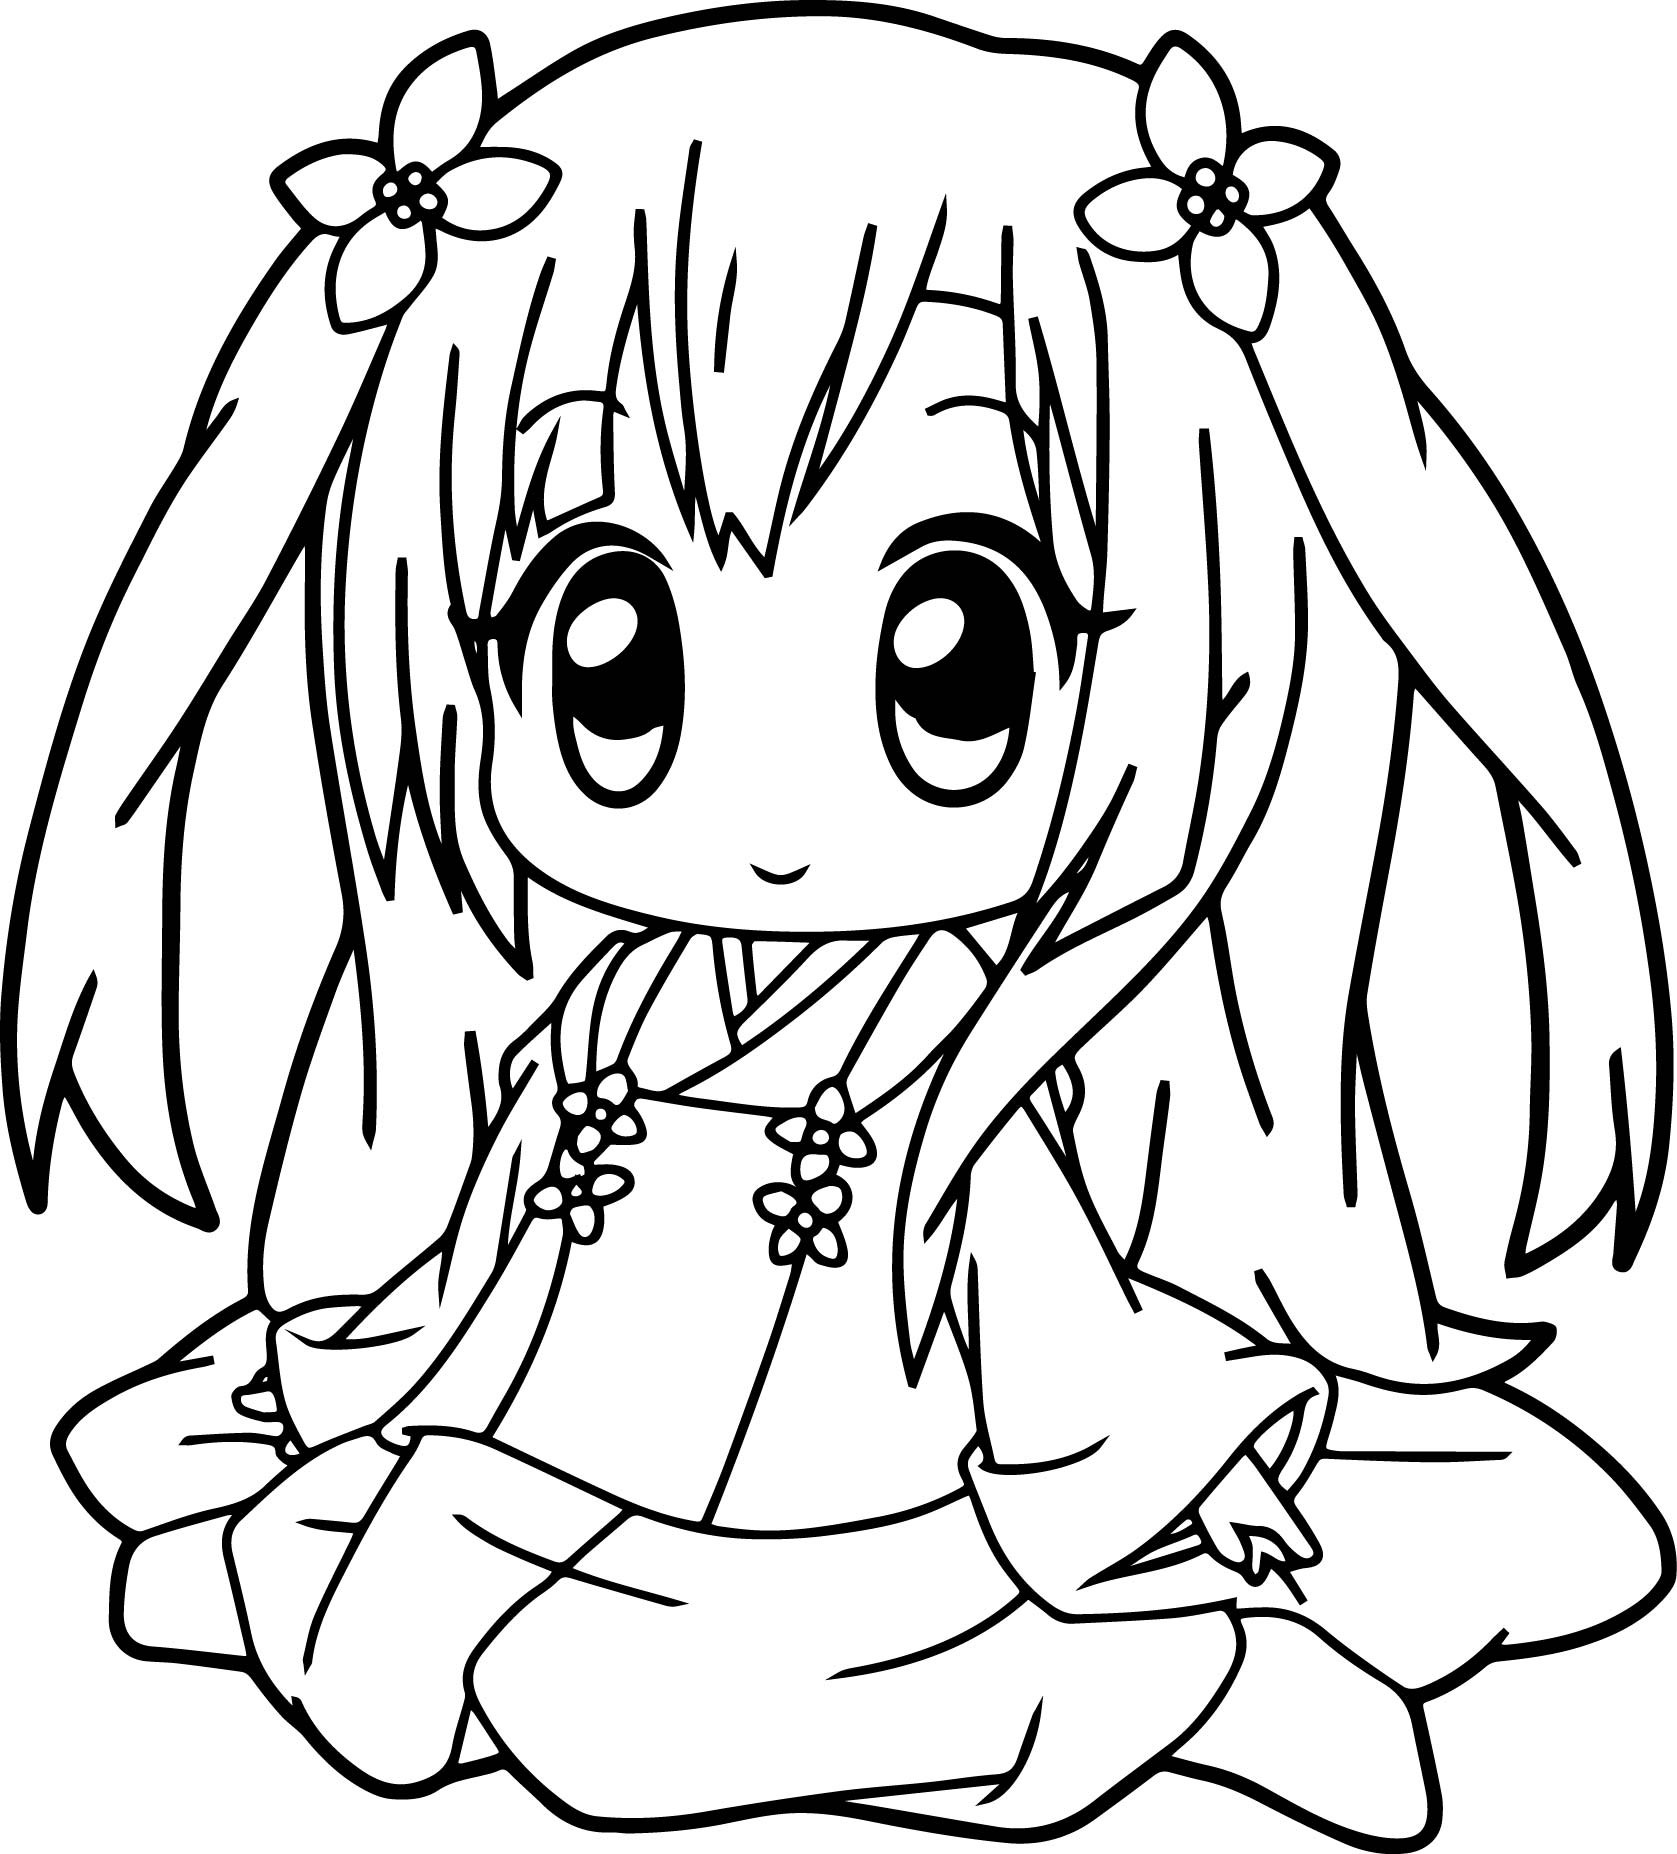 People Coloring Pages For Girls  Anime Girl Coloring Pages coloringsuite